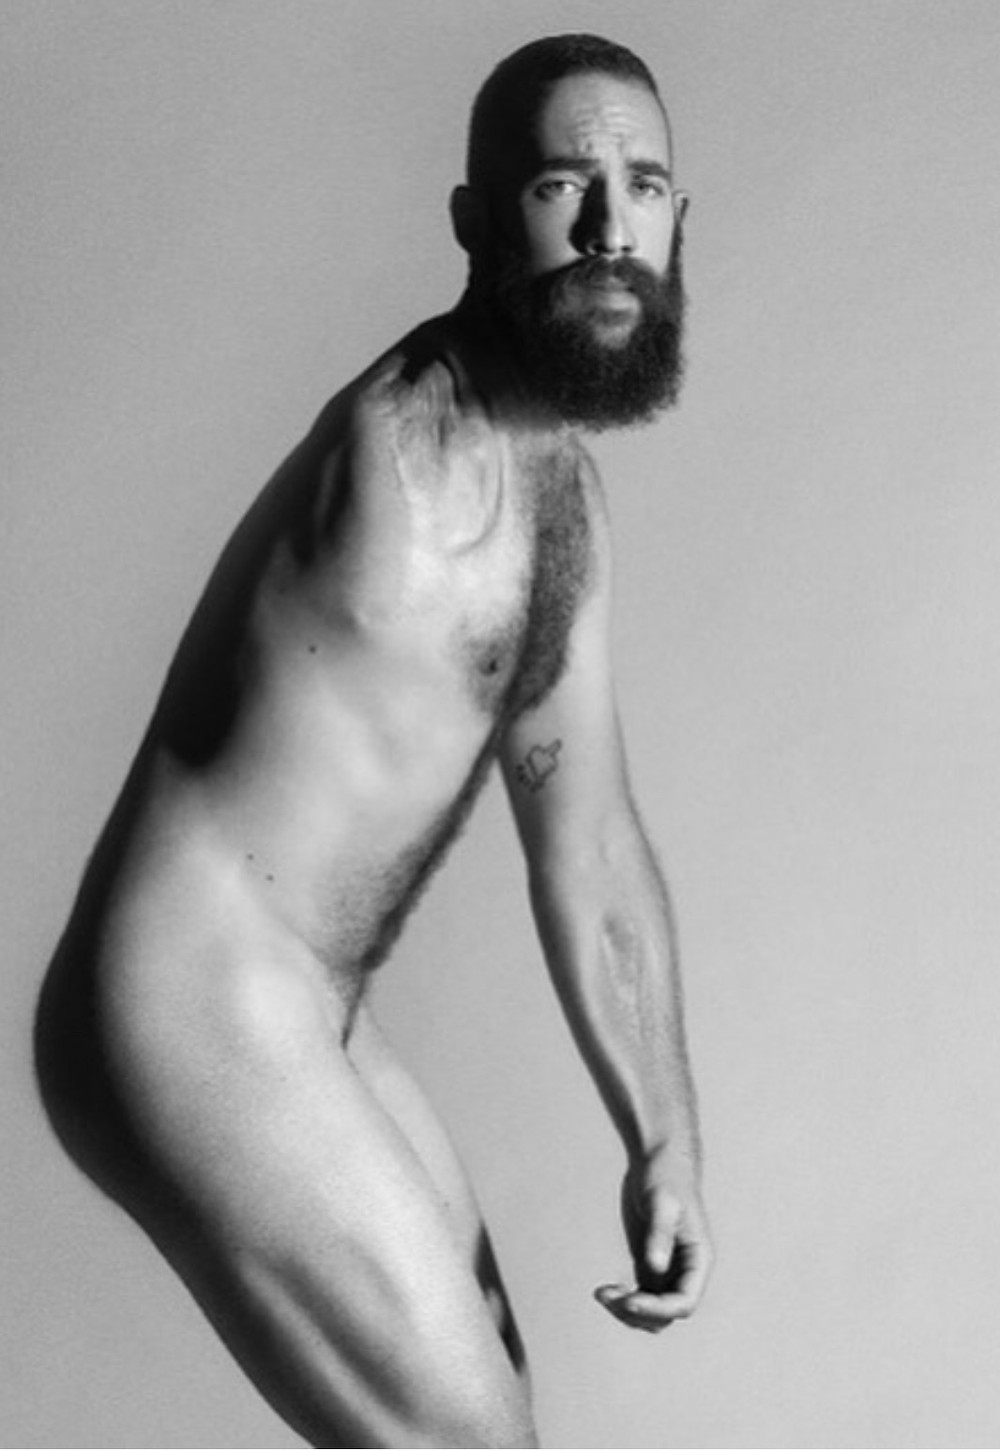 mental health, body confidence, channel 4, naked beach, male model,